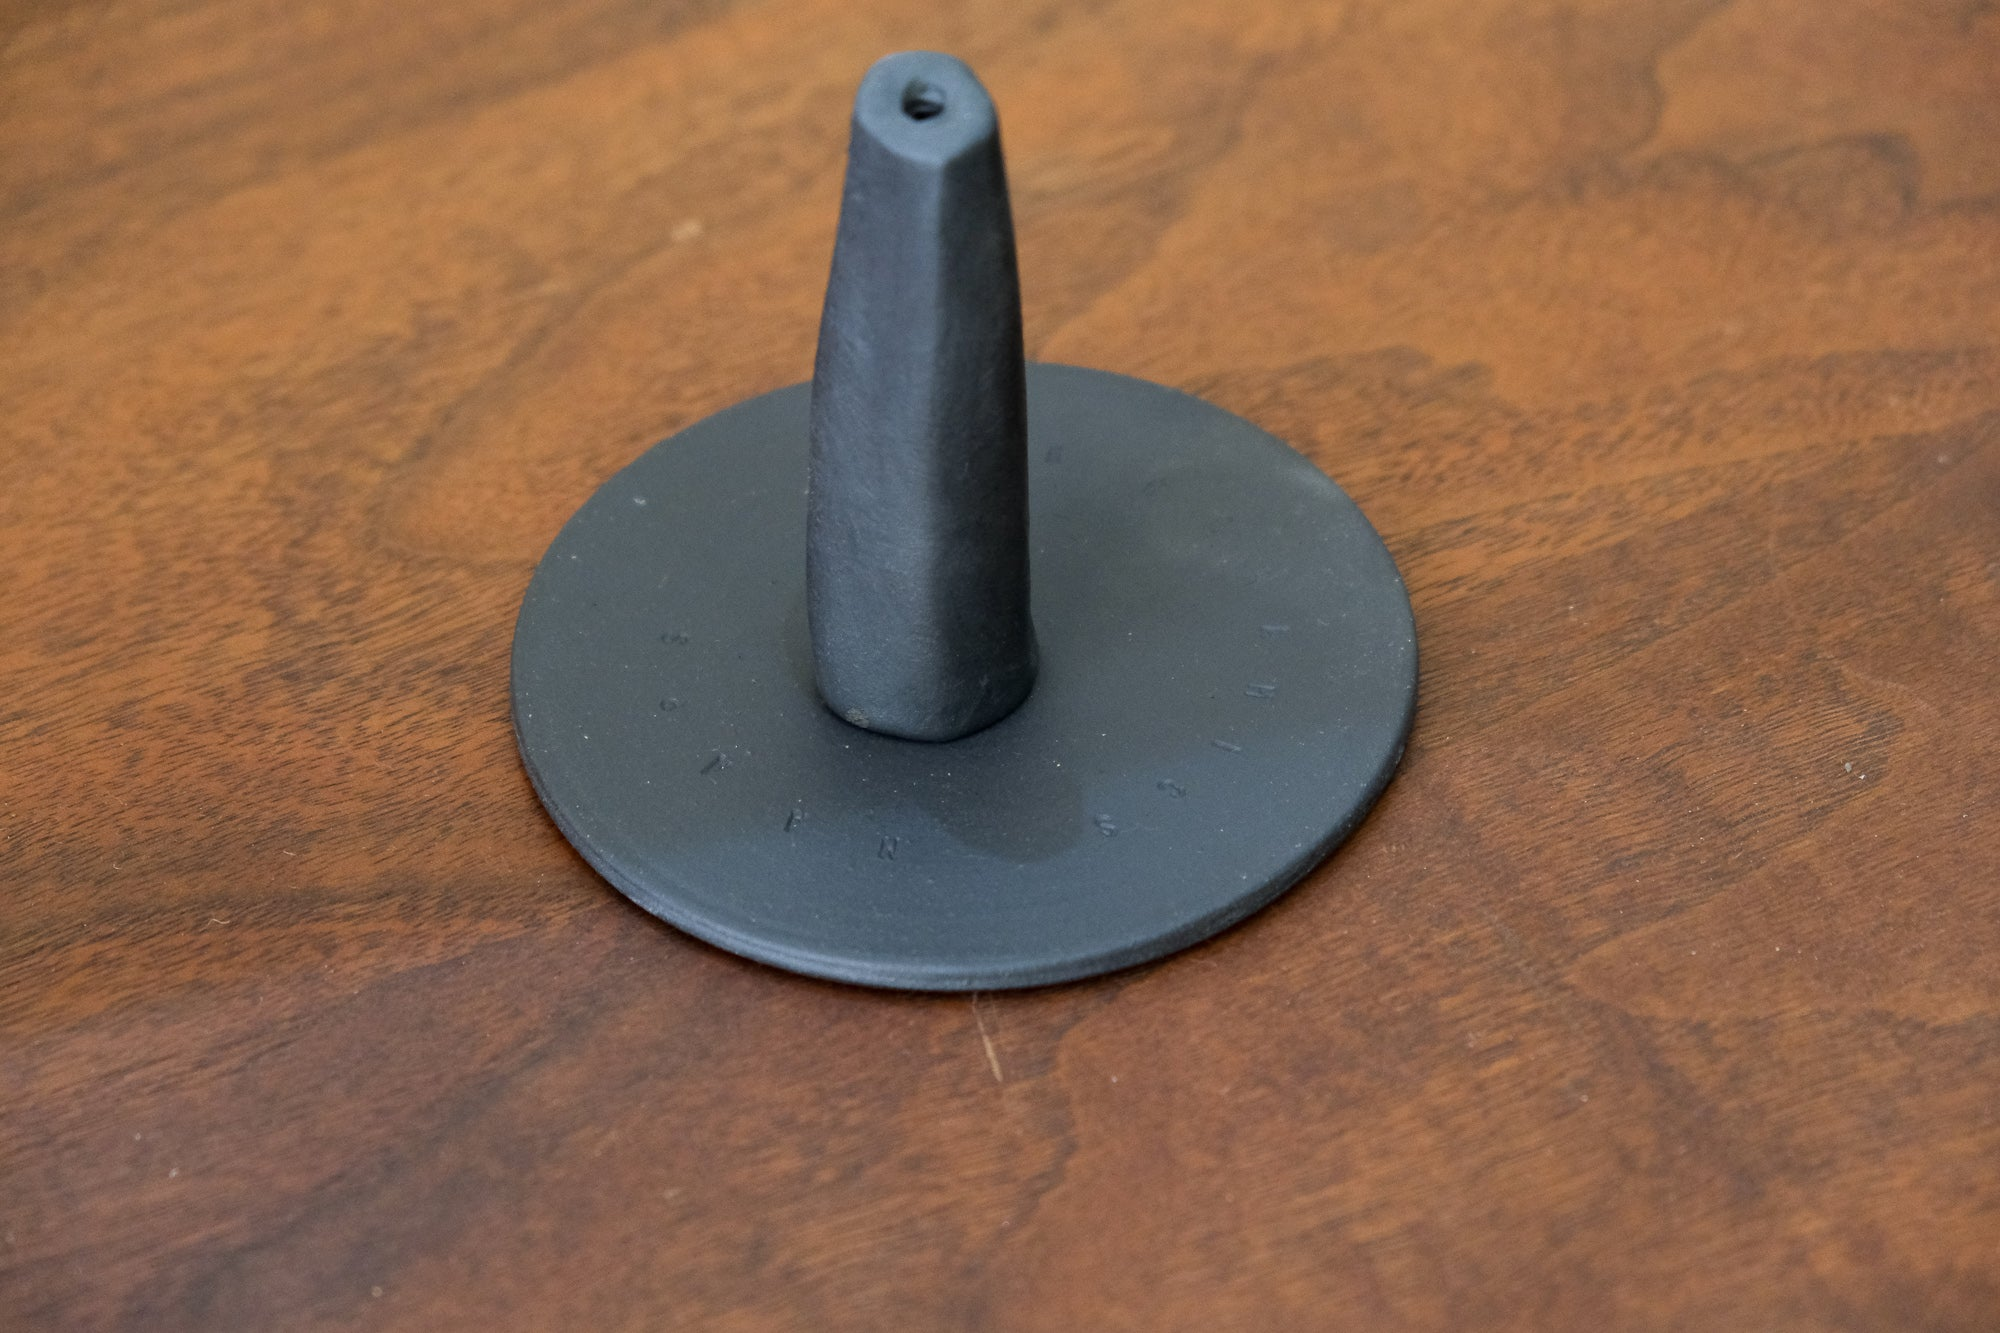 Maaps Monolith Incense Holder in Black